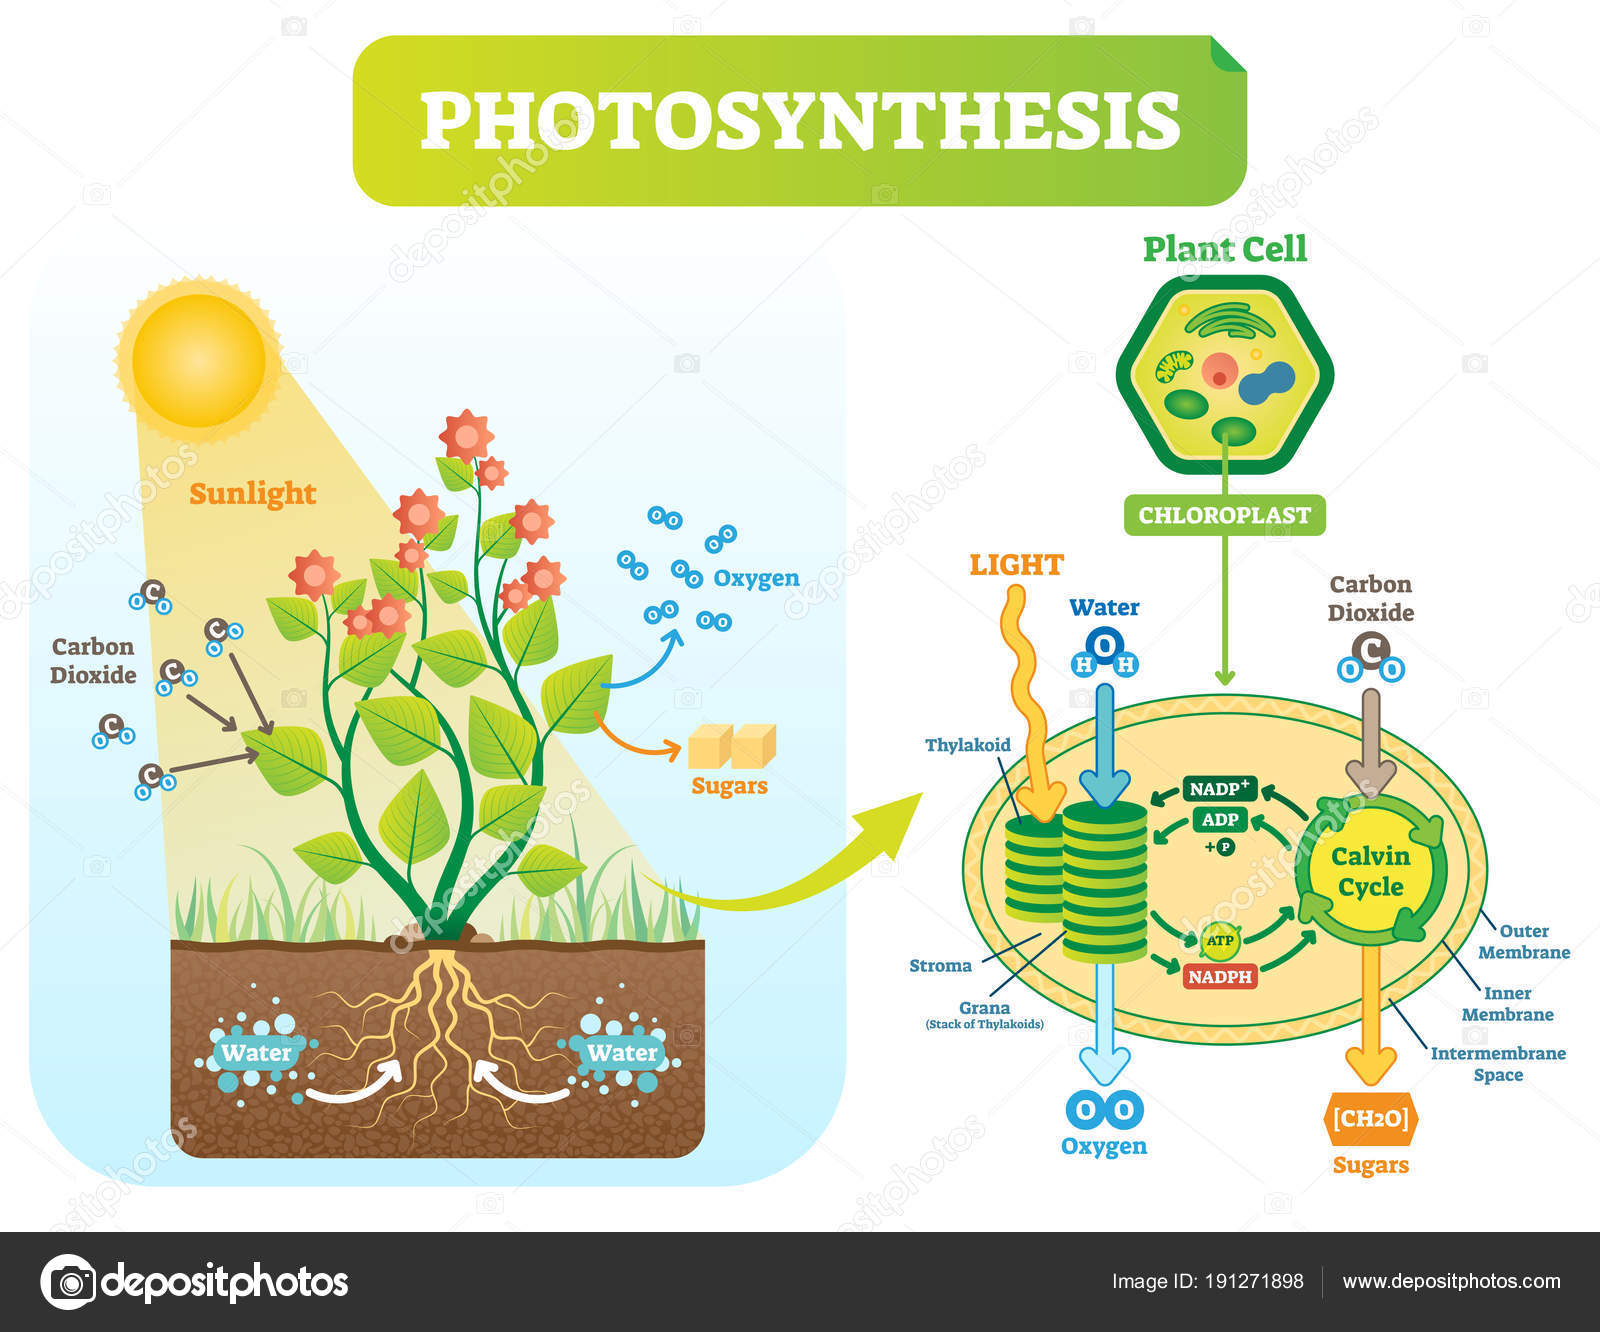 Photosynthesis Picture Diagram Photosynthesis Biological